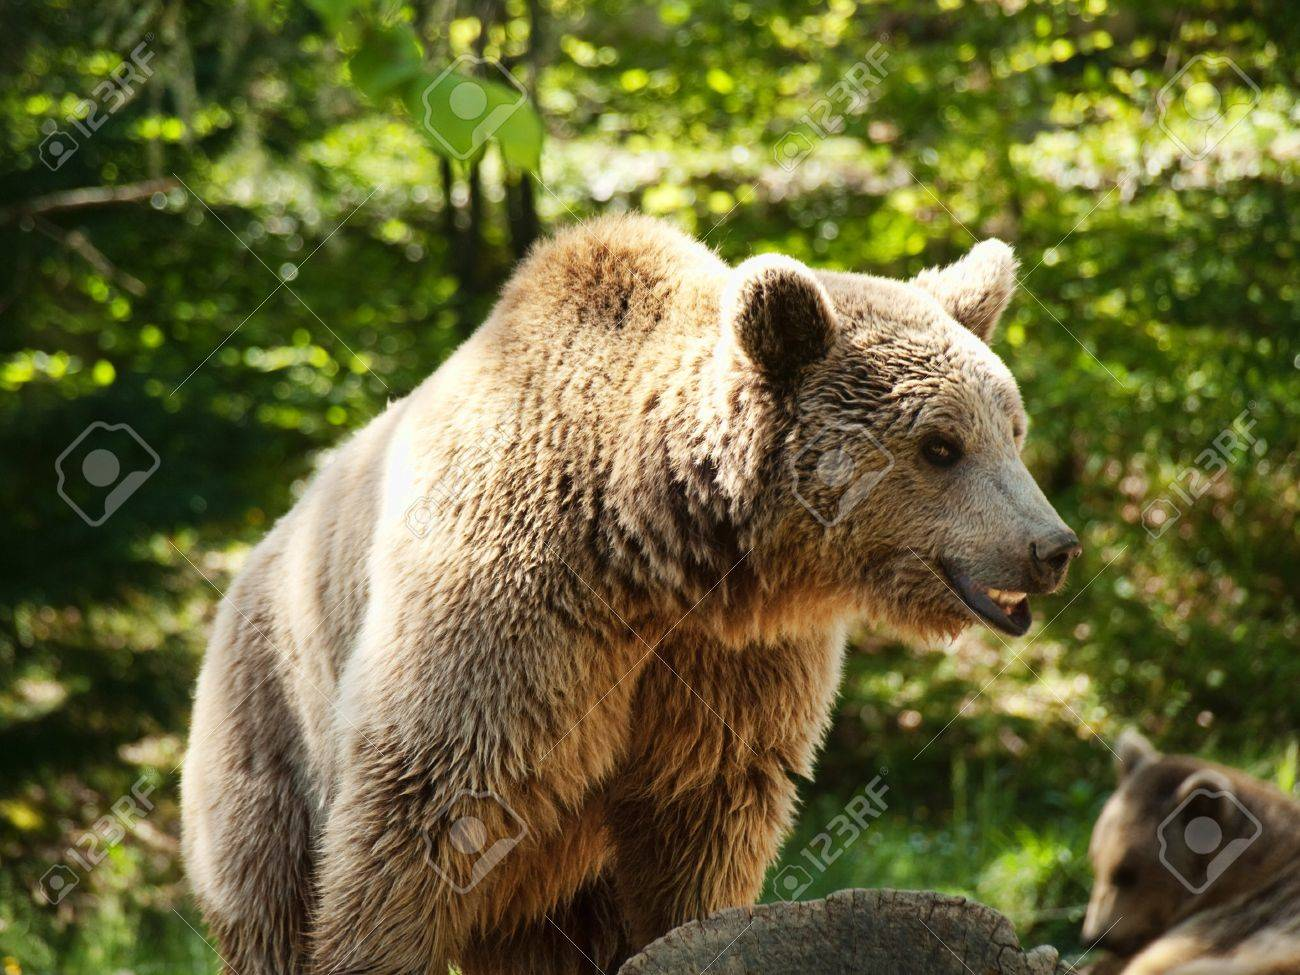 One of few brown bears living in the French pyrenees mountains Stock Photo - 6981514